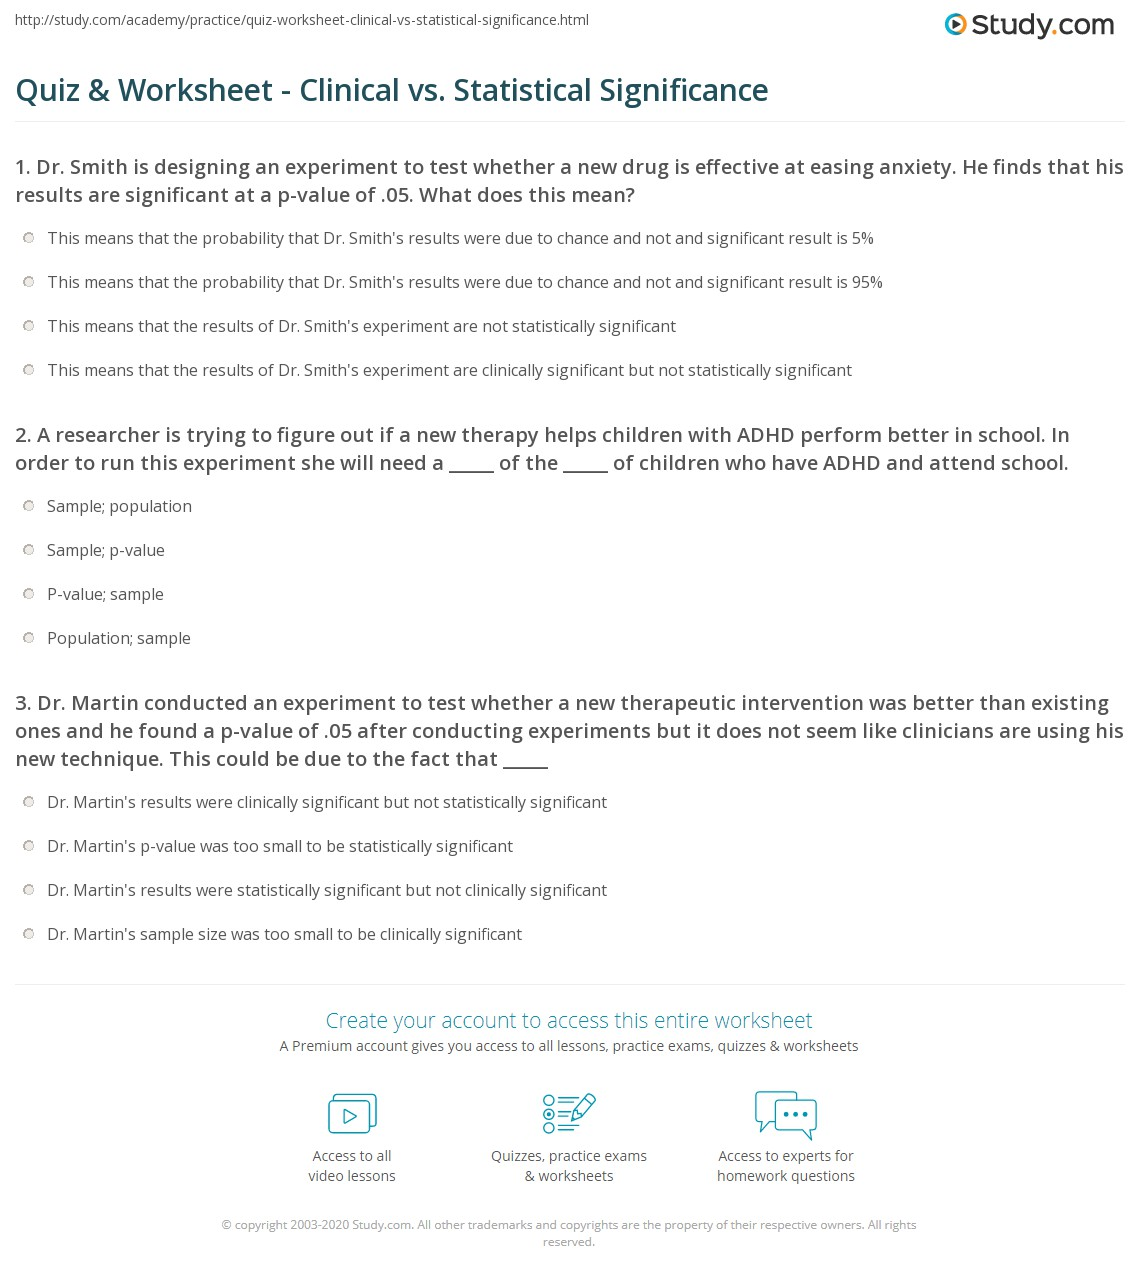 Quiz Worksheet Clinical vs Statistical Significance – Designing an Experiment Worksheet